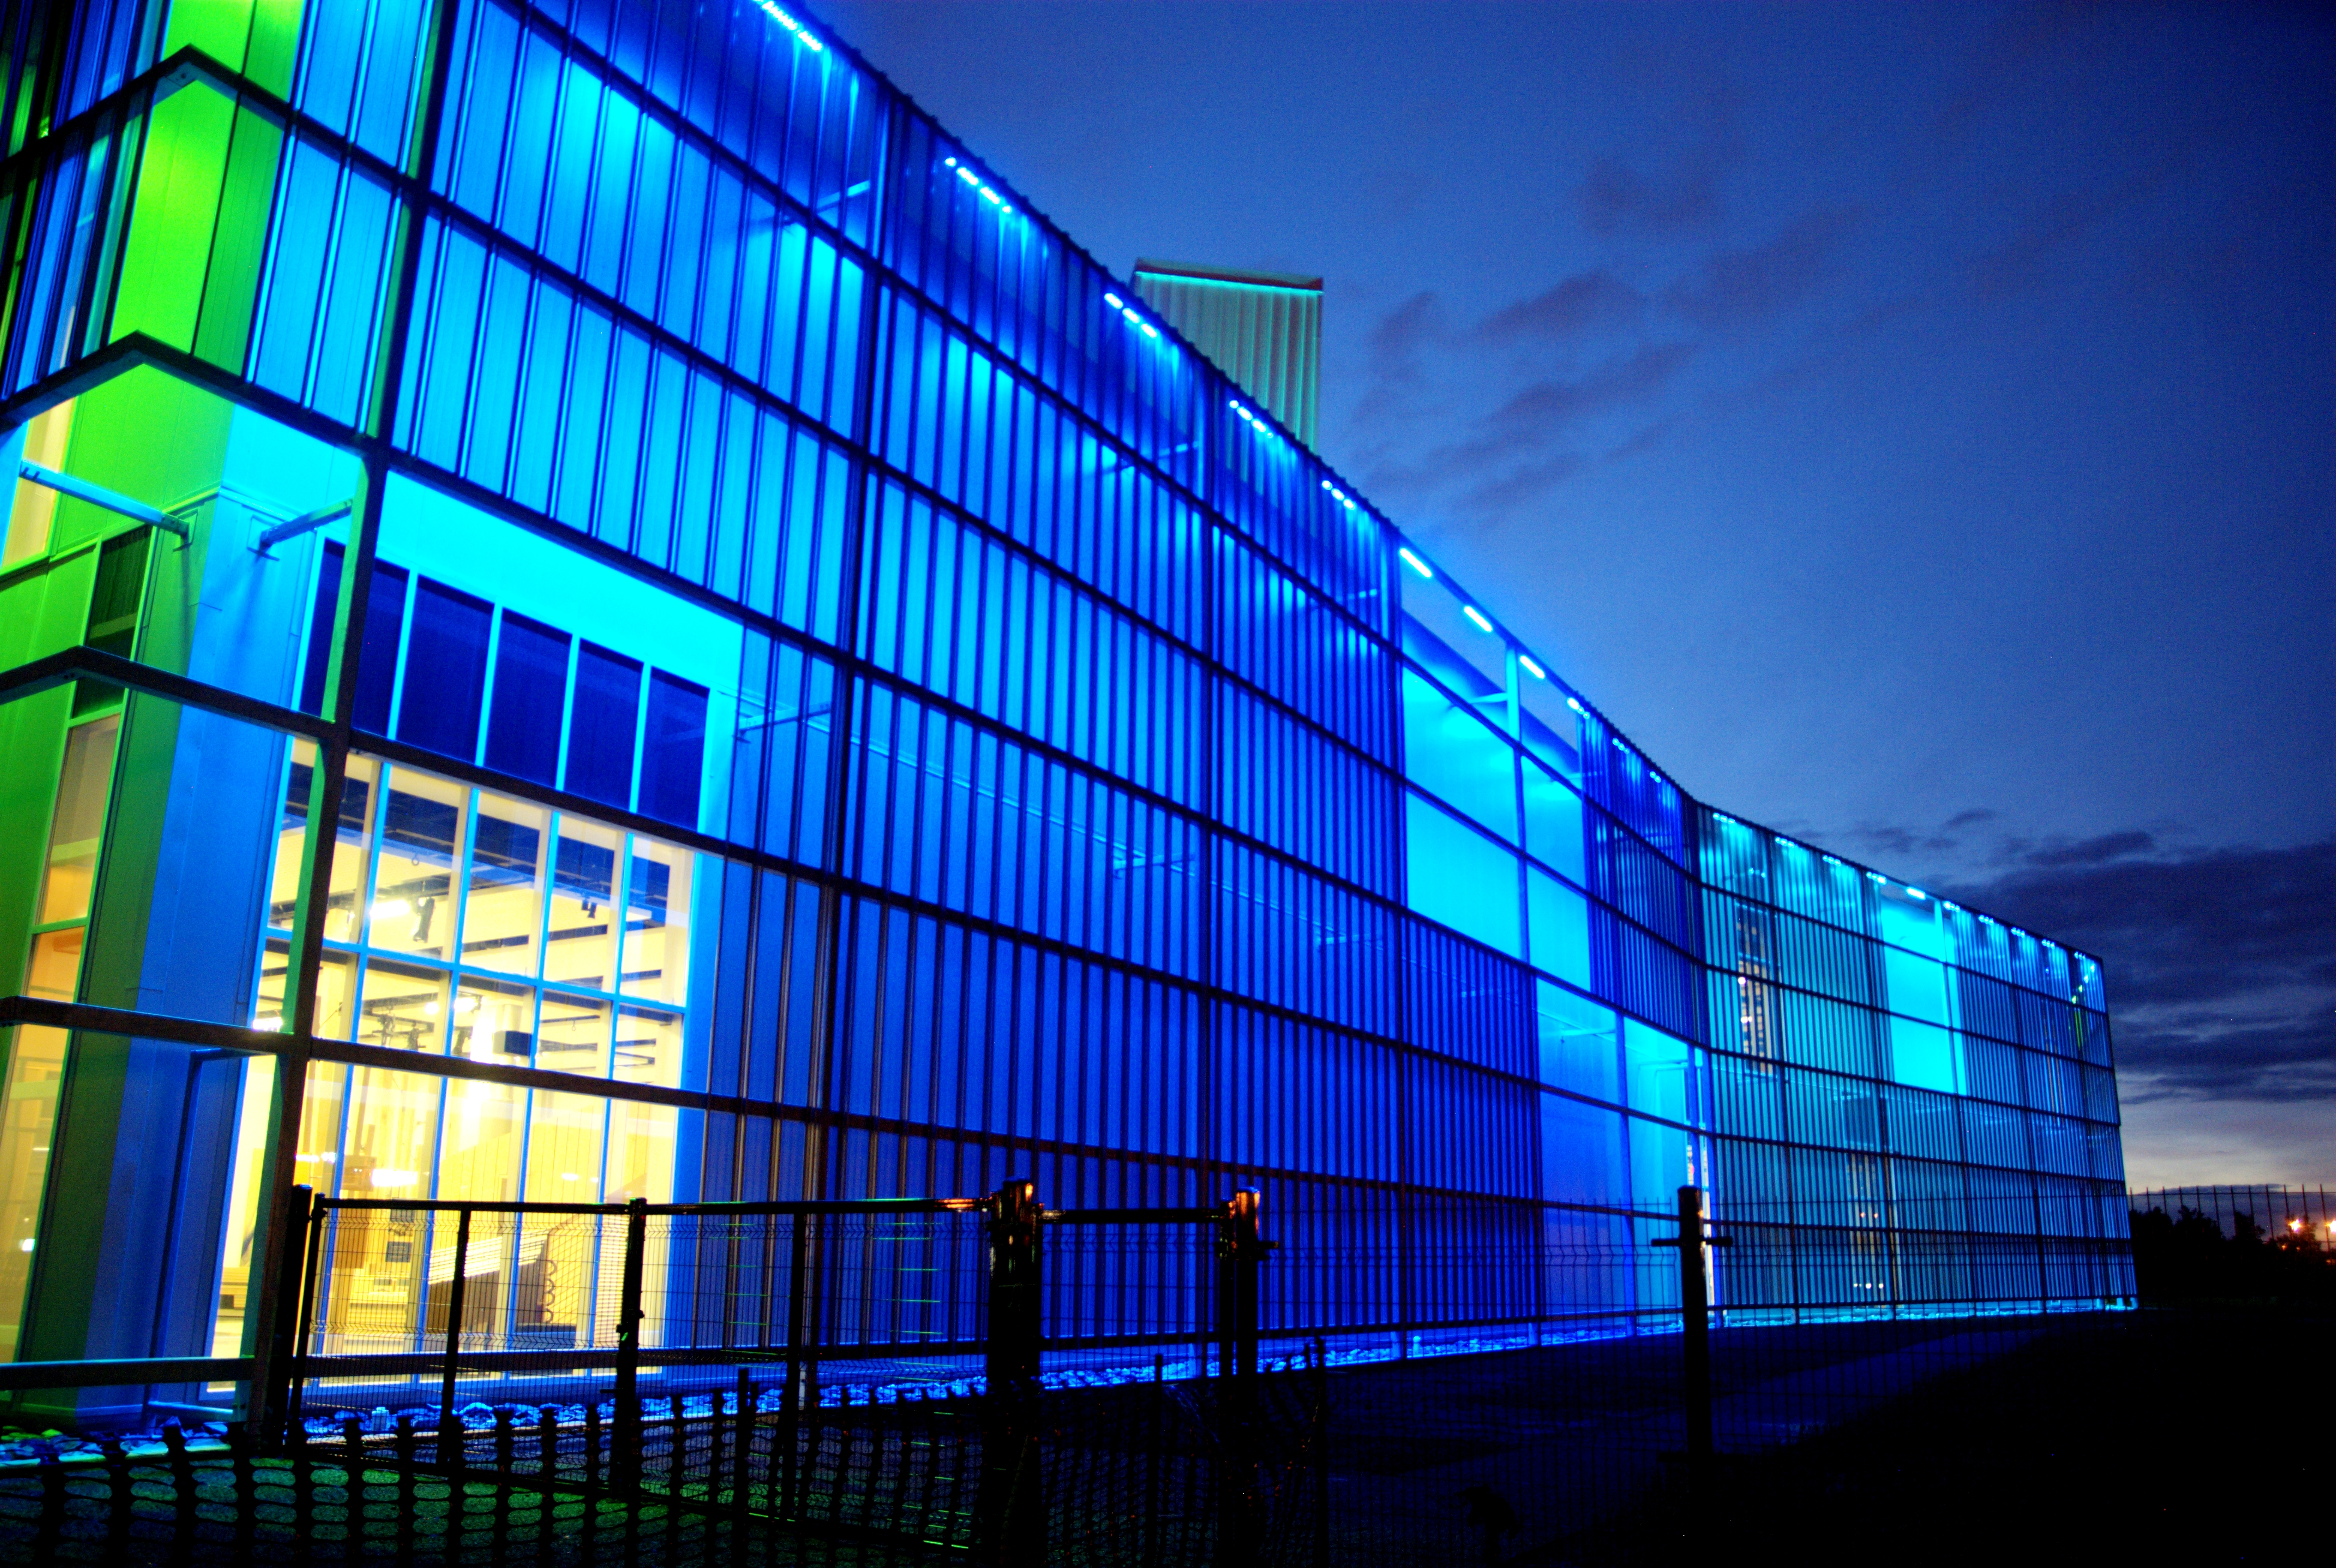 At Night Variable Mood Lighting Inset Between The Skin And Building Varies Sparks Personality